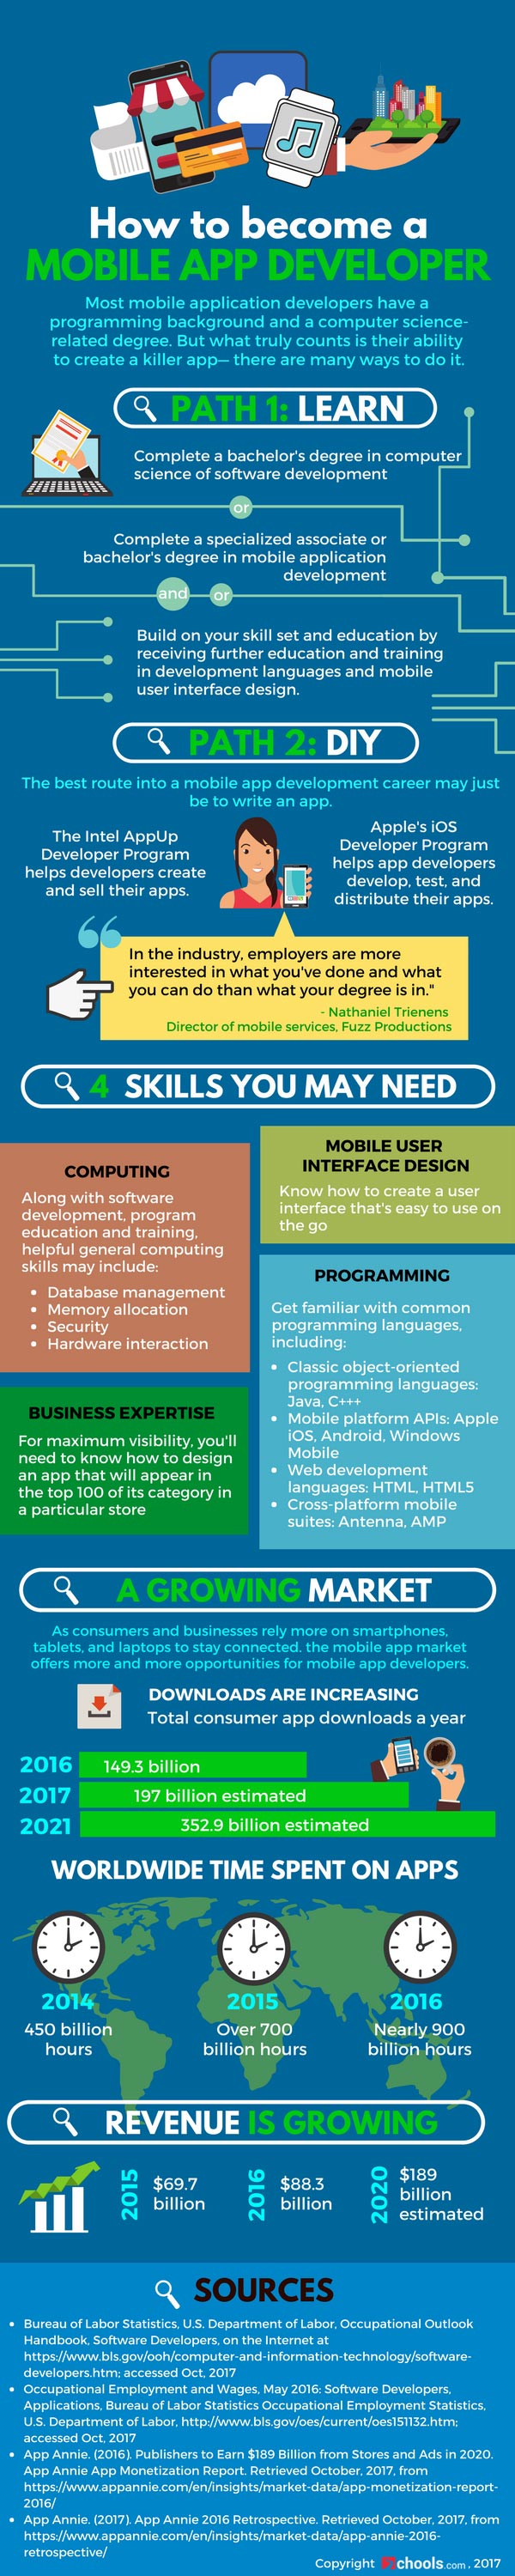 How to Become a Mobile App Developer